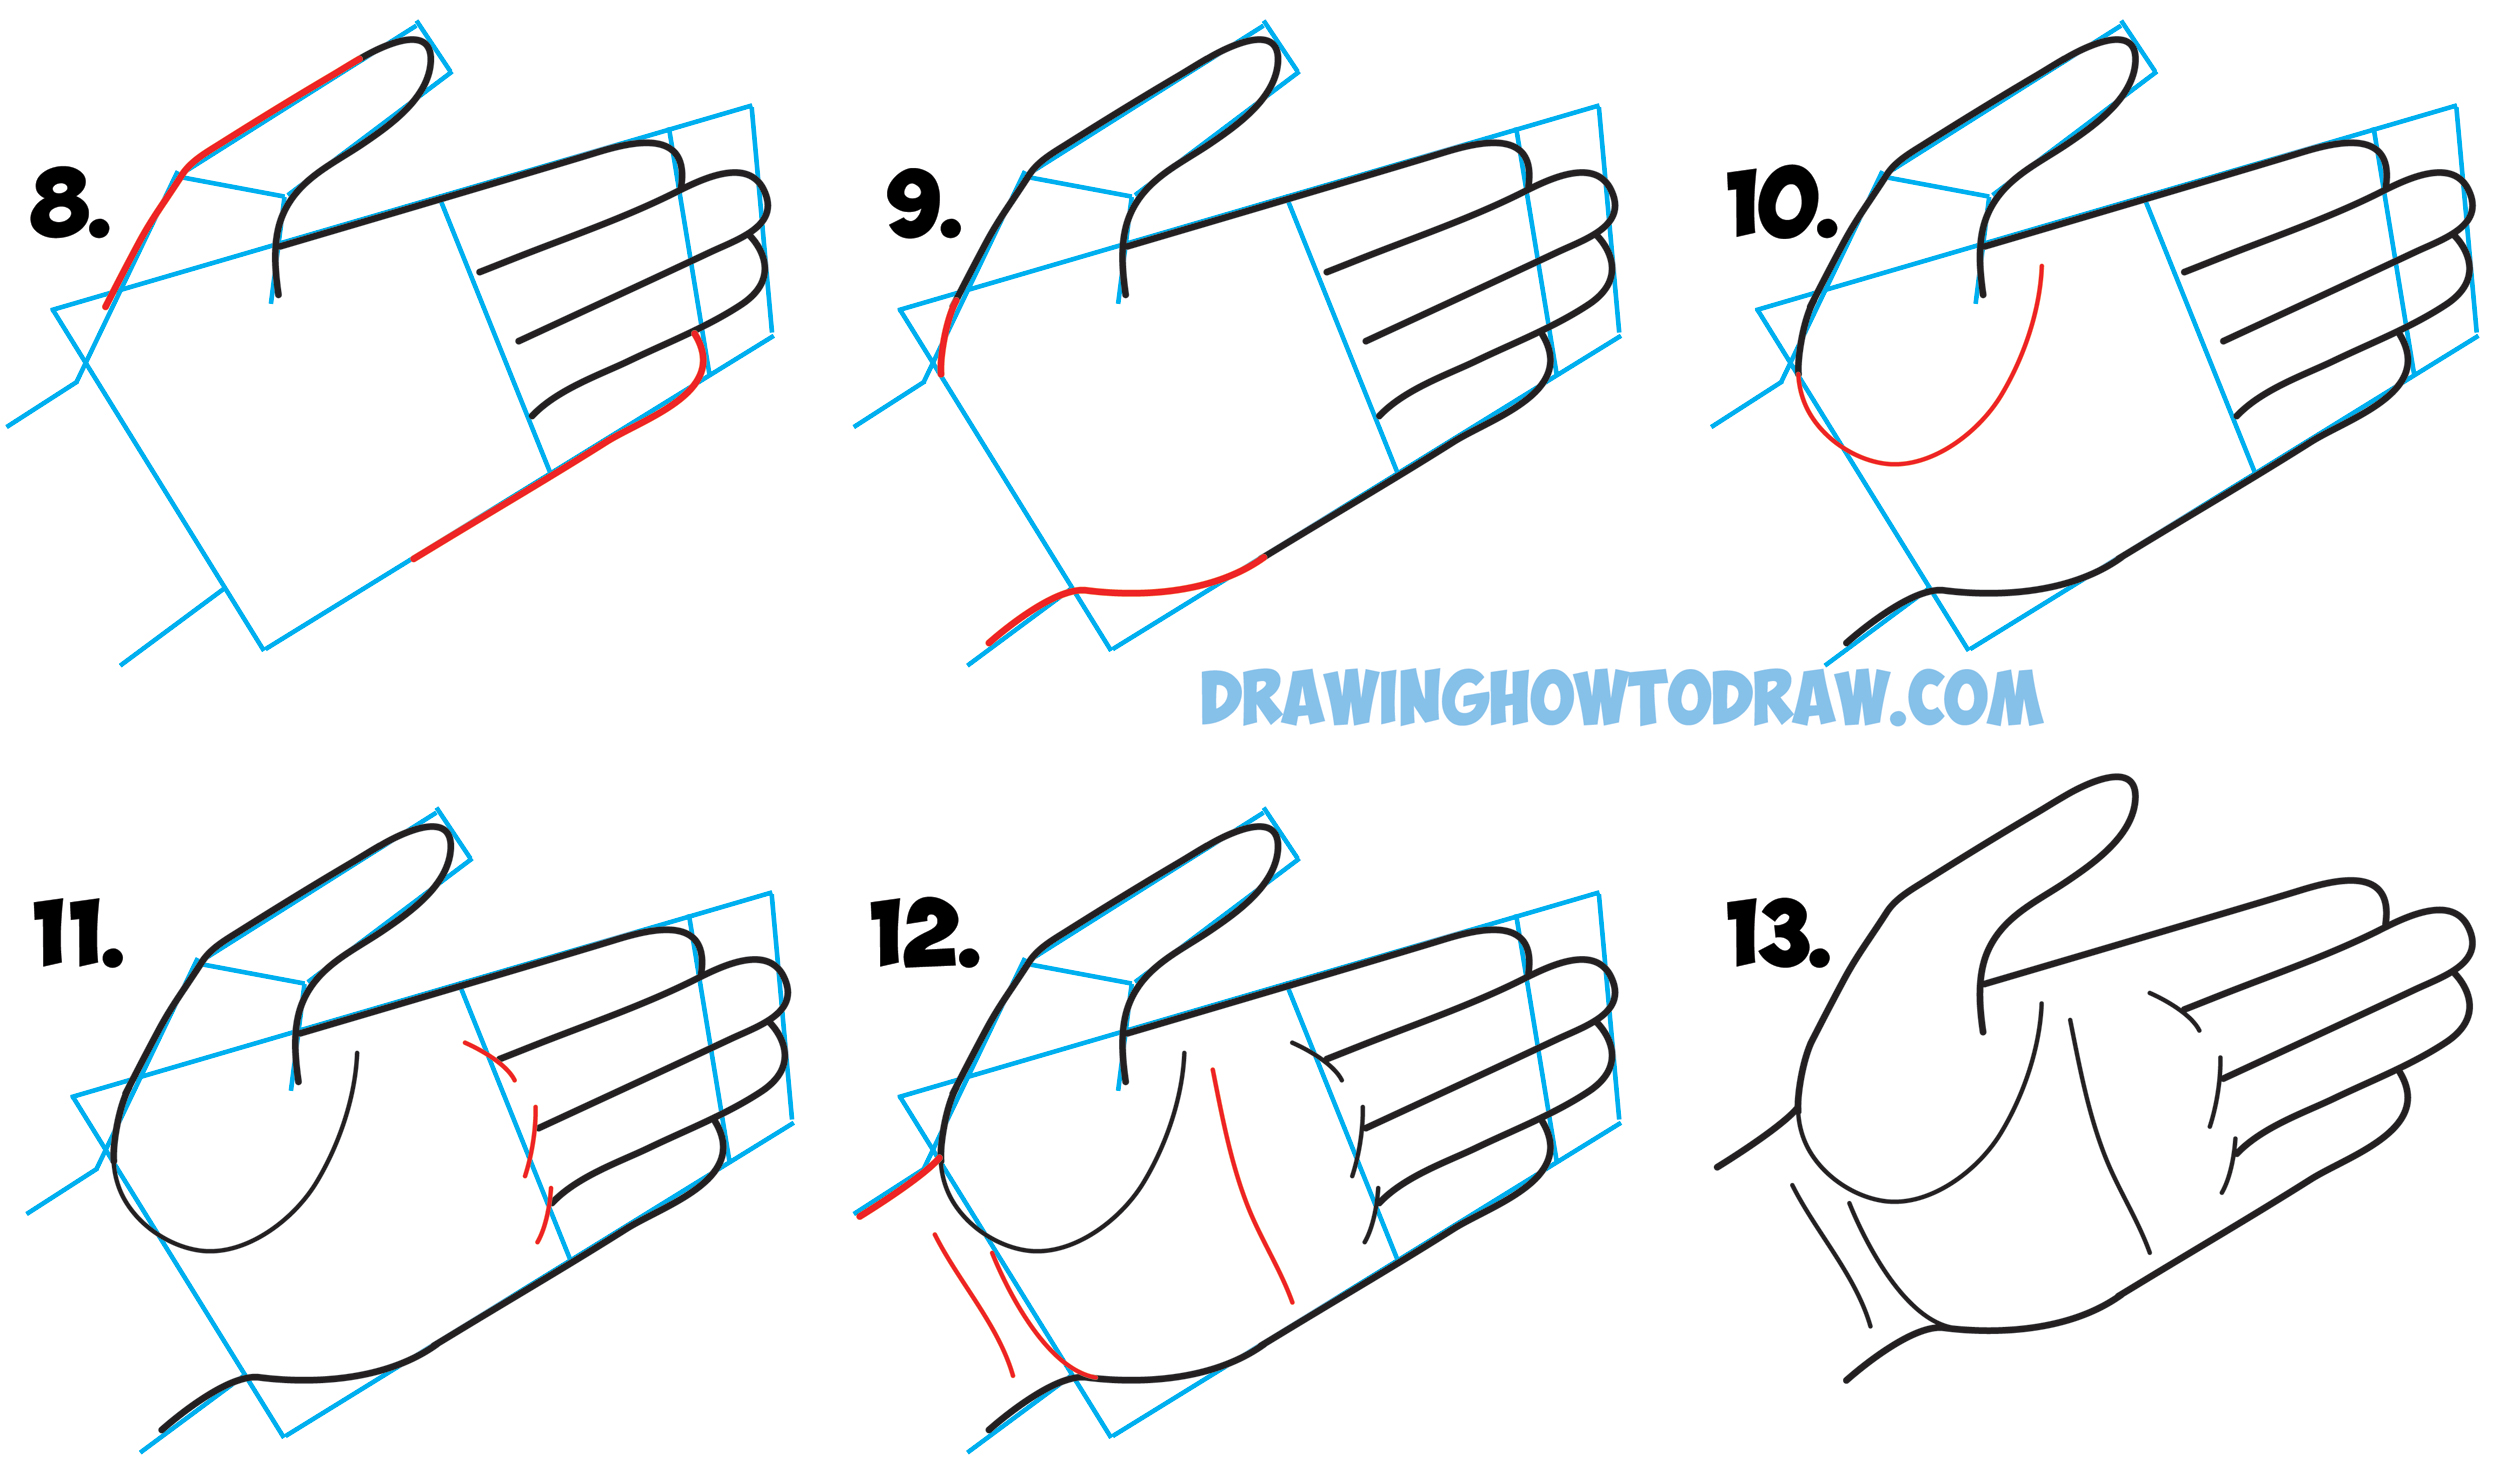 Learn how to draw cartoon hands open palm drawing open palmed hands simple step